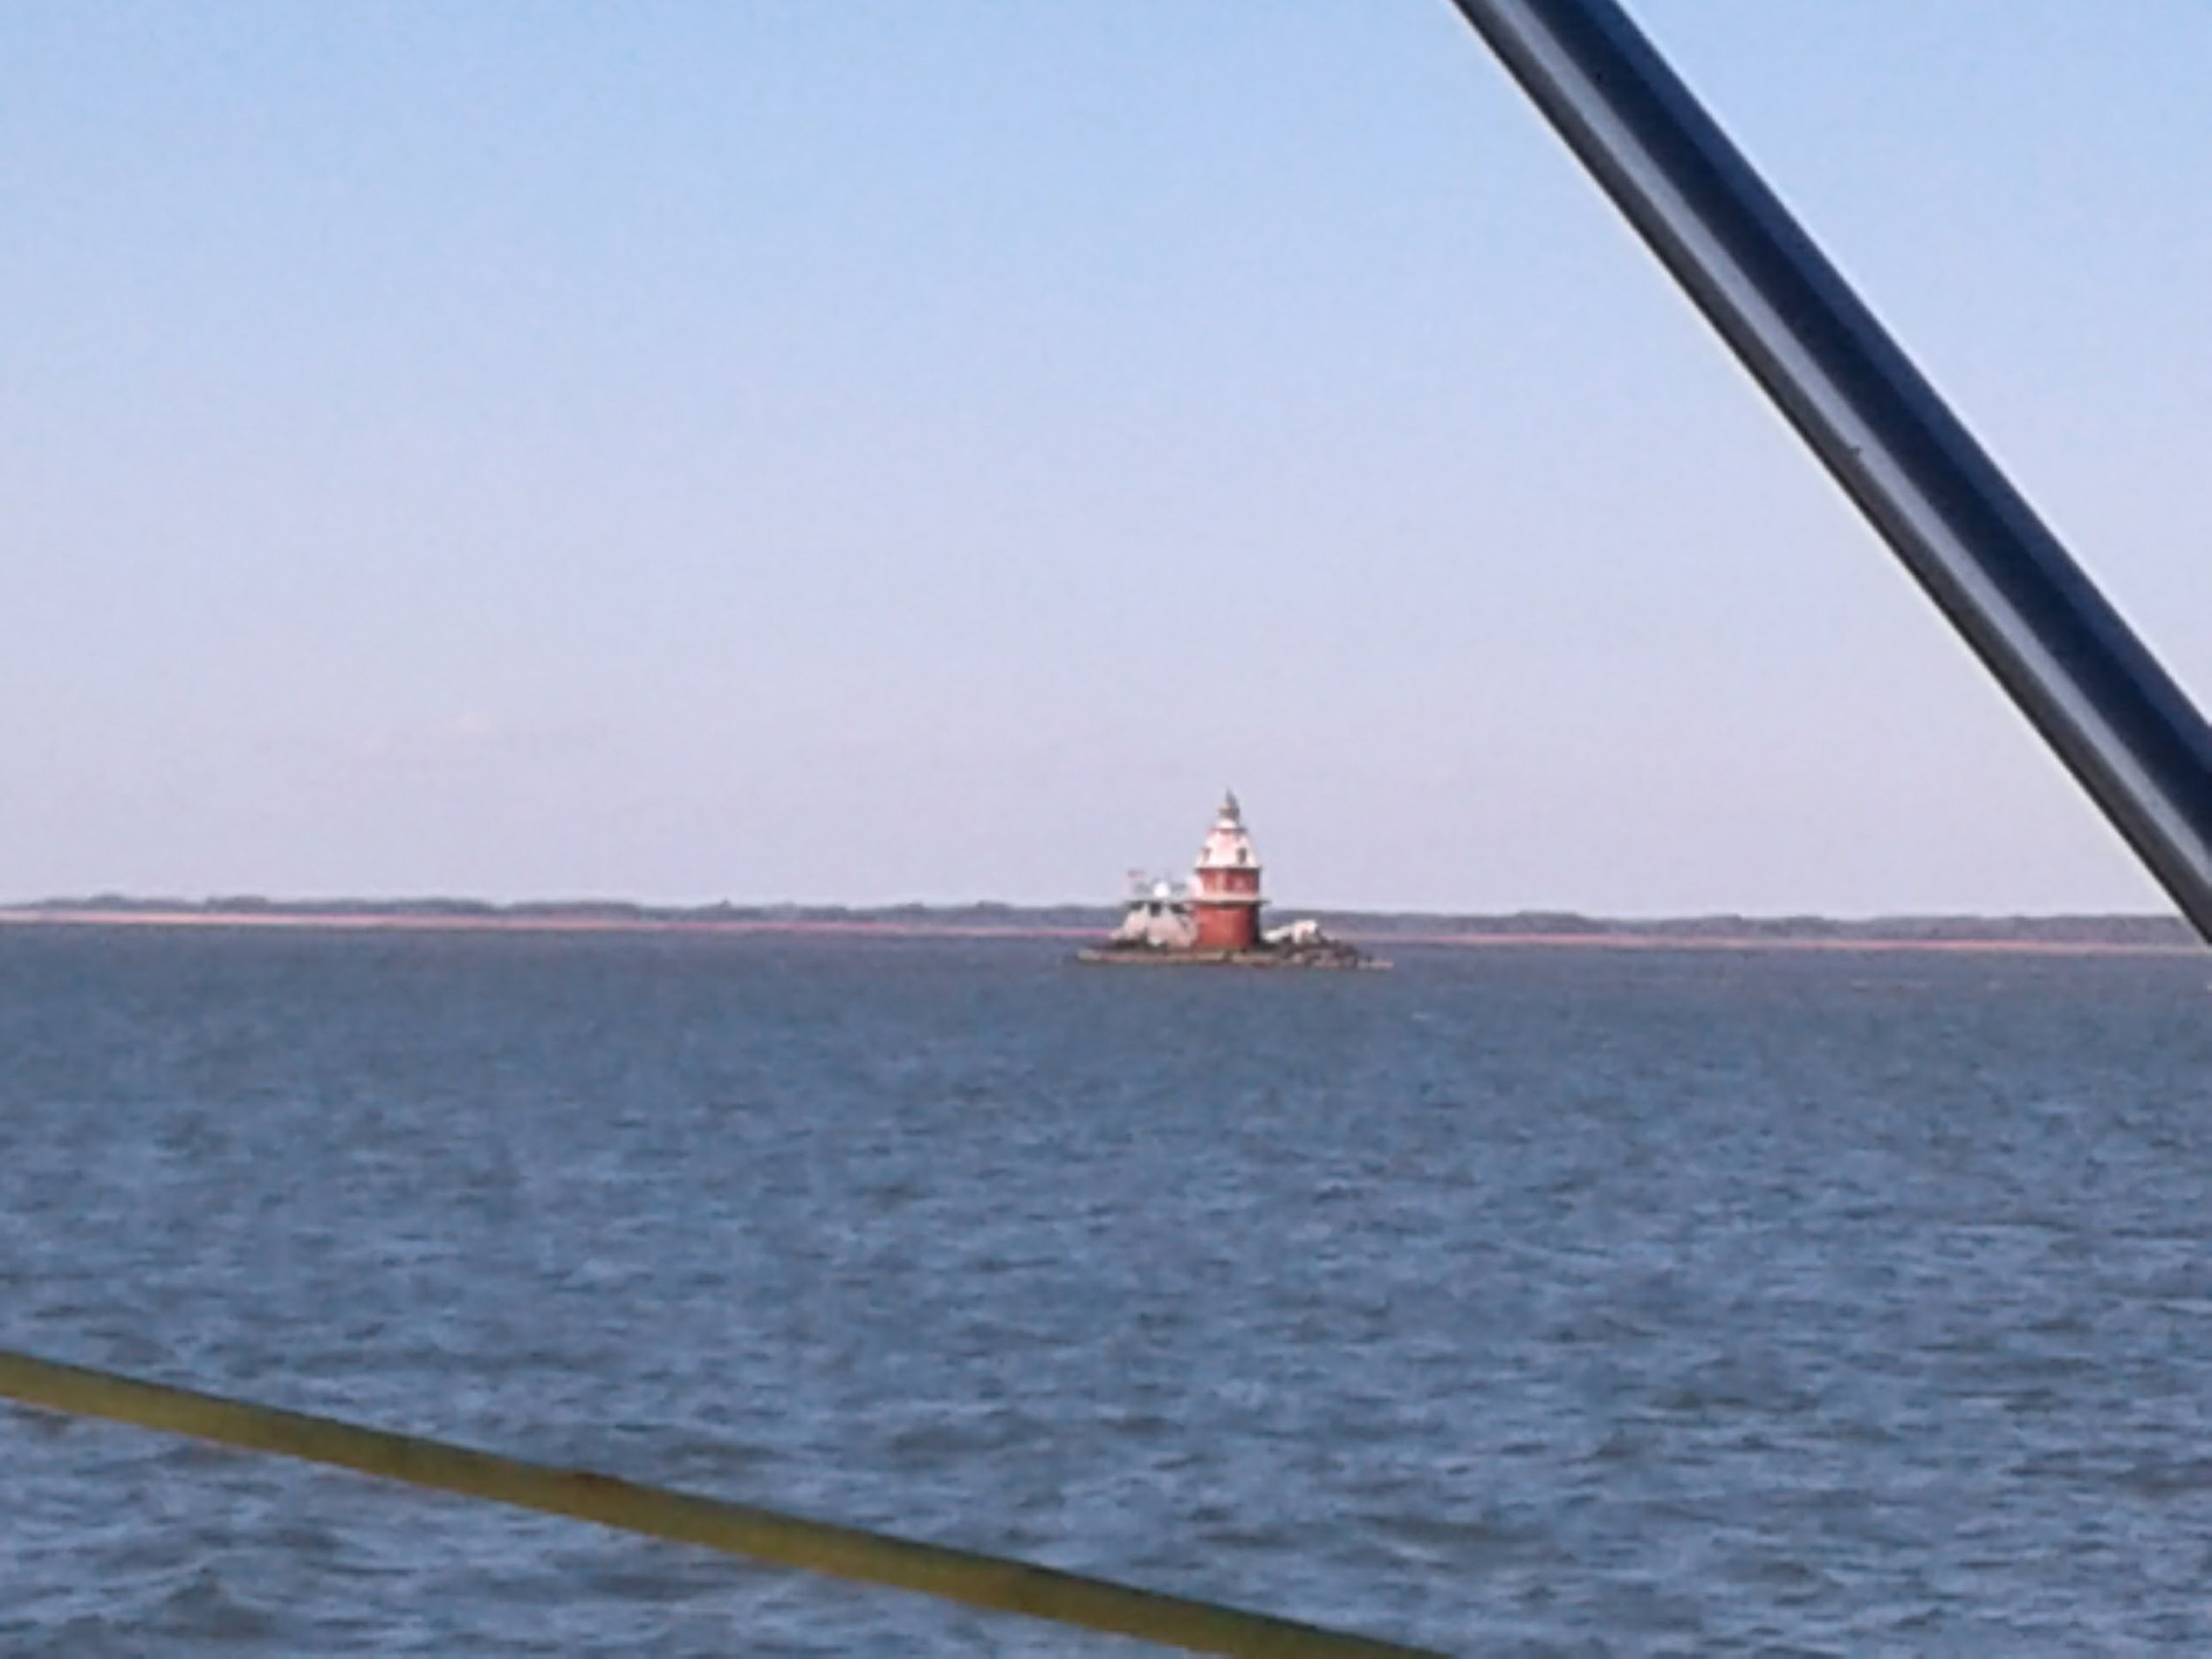 Lighthouse in the Delaware. Wrong angle to get the Nuclear plant too.